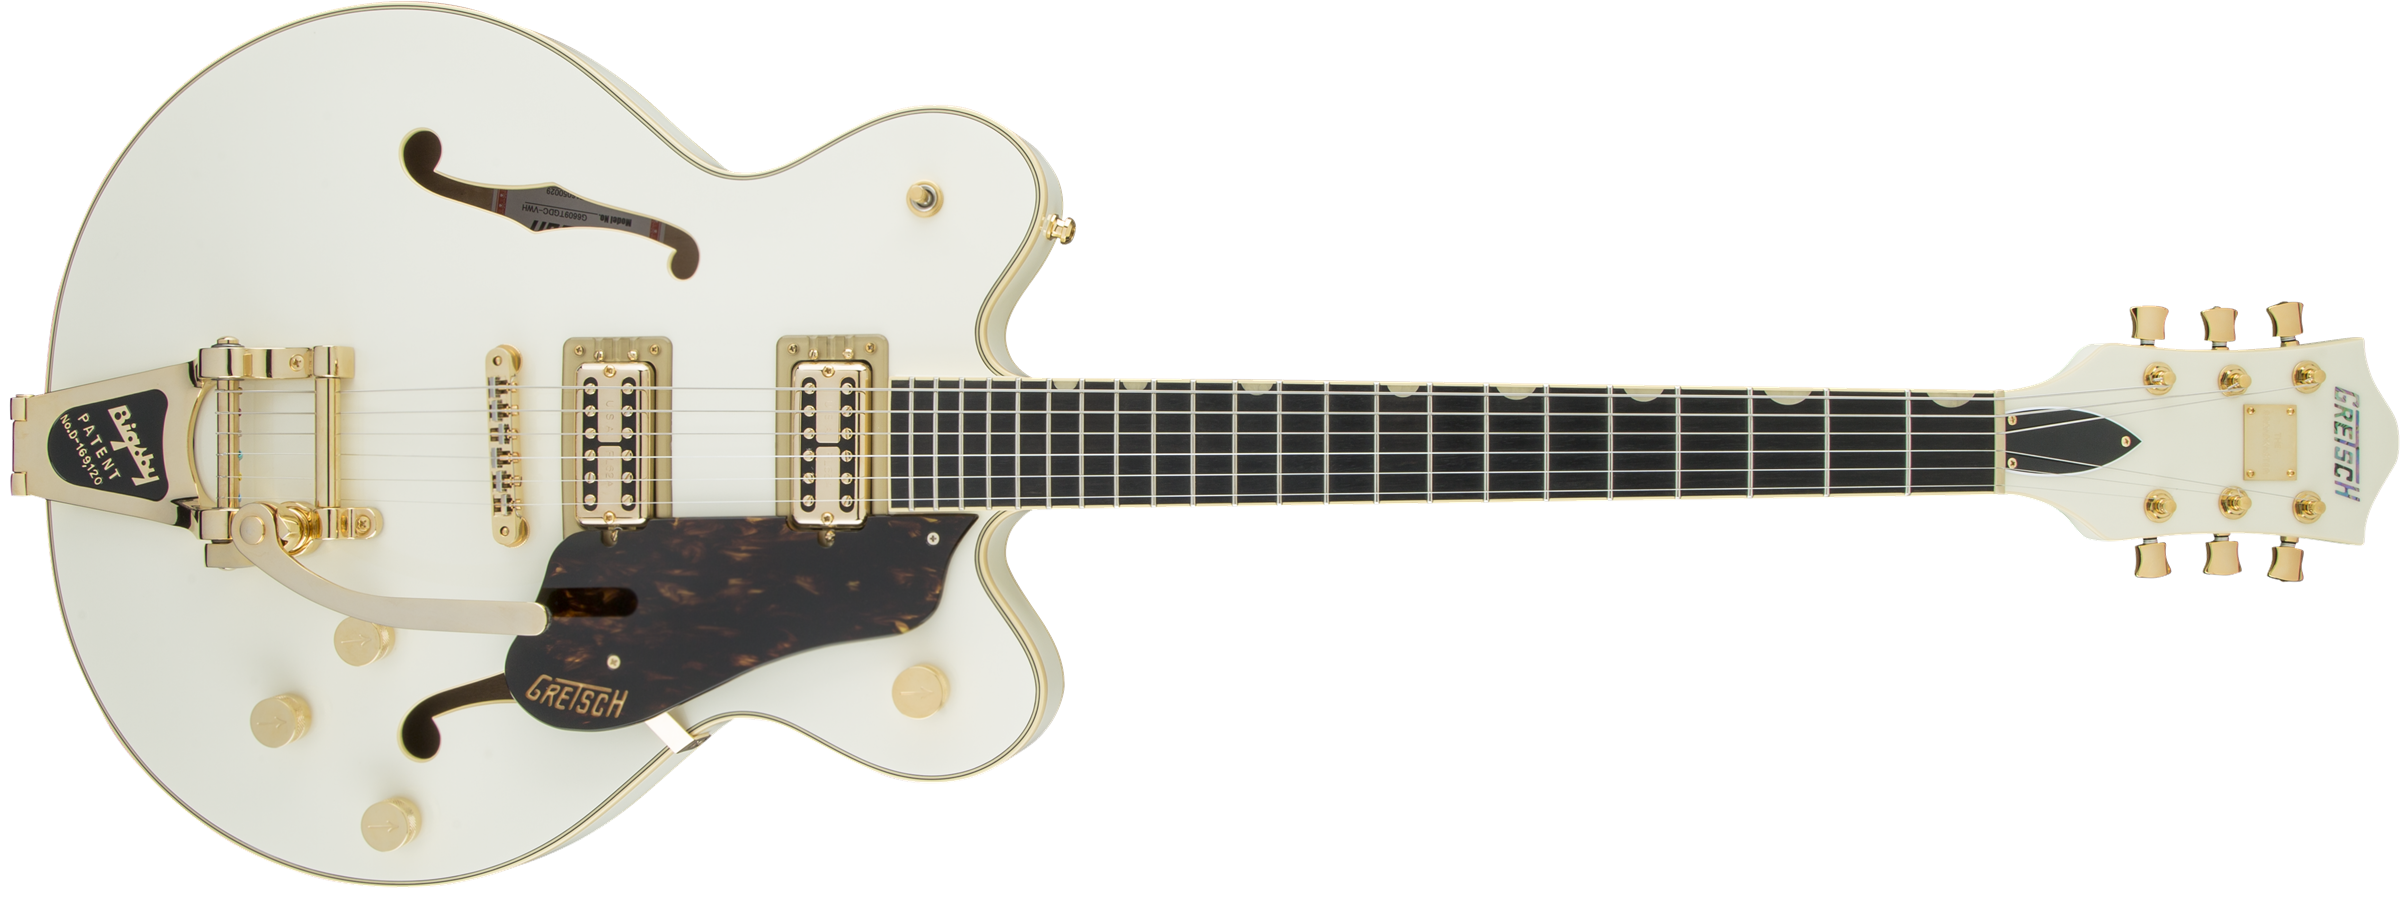 Center Block G6609tg Players Edition Broadkaster